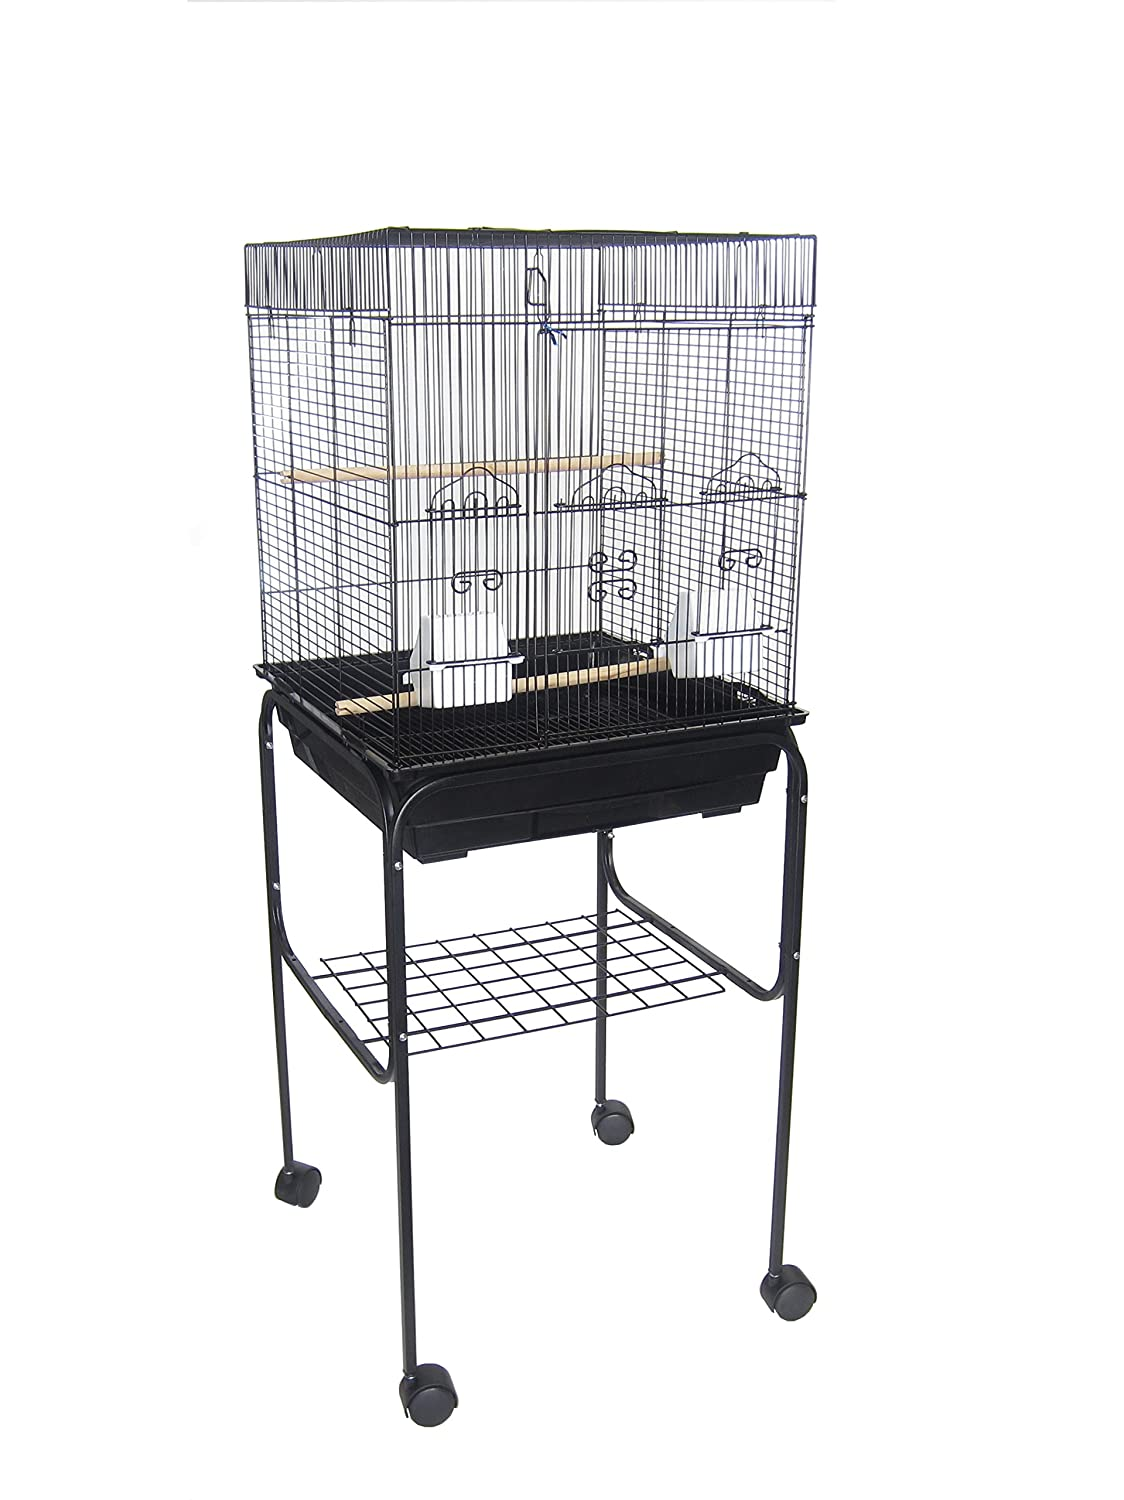 Yml 5824 3/8-Inch Bar Spacing SquareTop Small Bird Cage with Stand-18-Inch X14-Inch in Black 5824_4814BLK